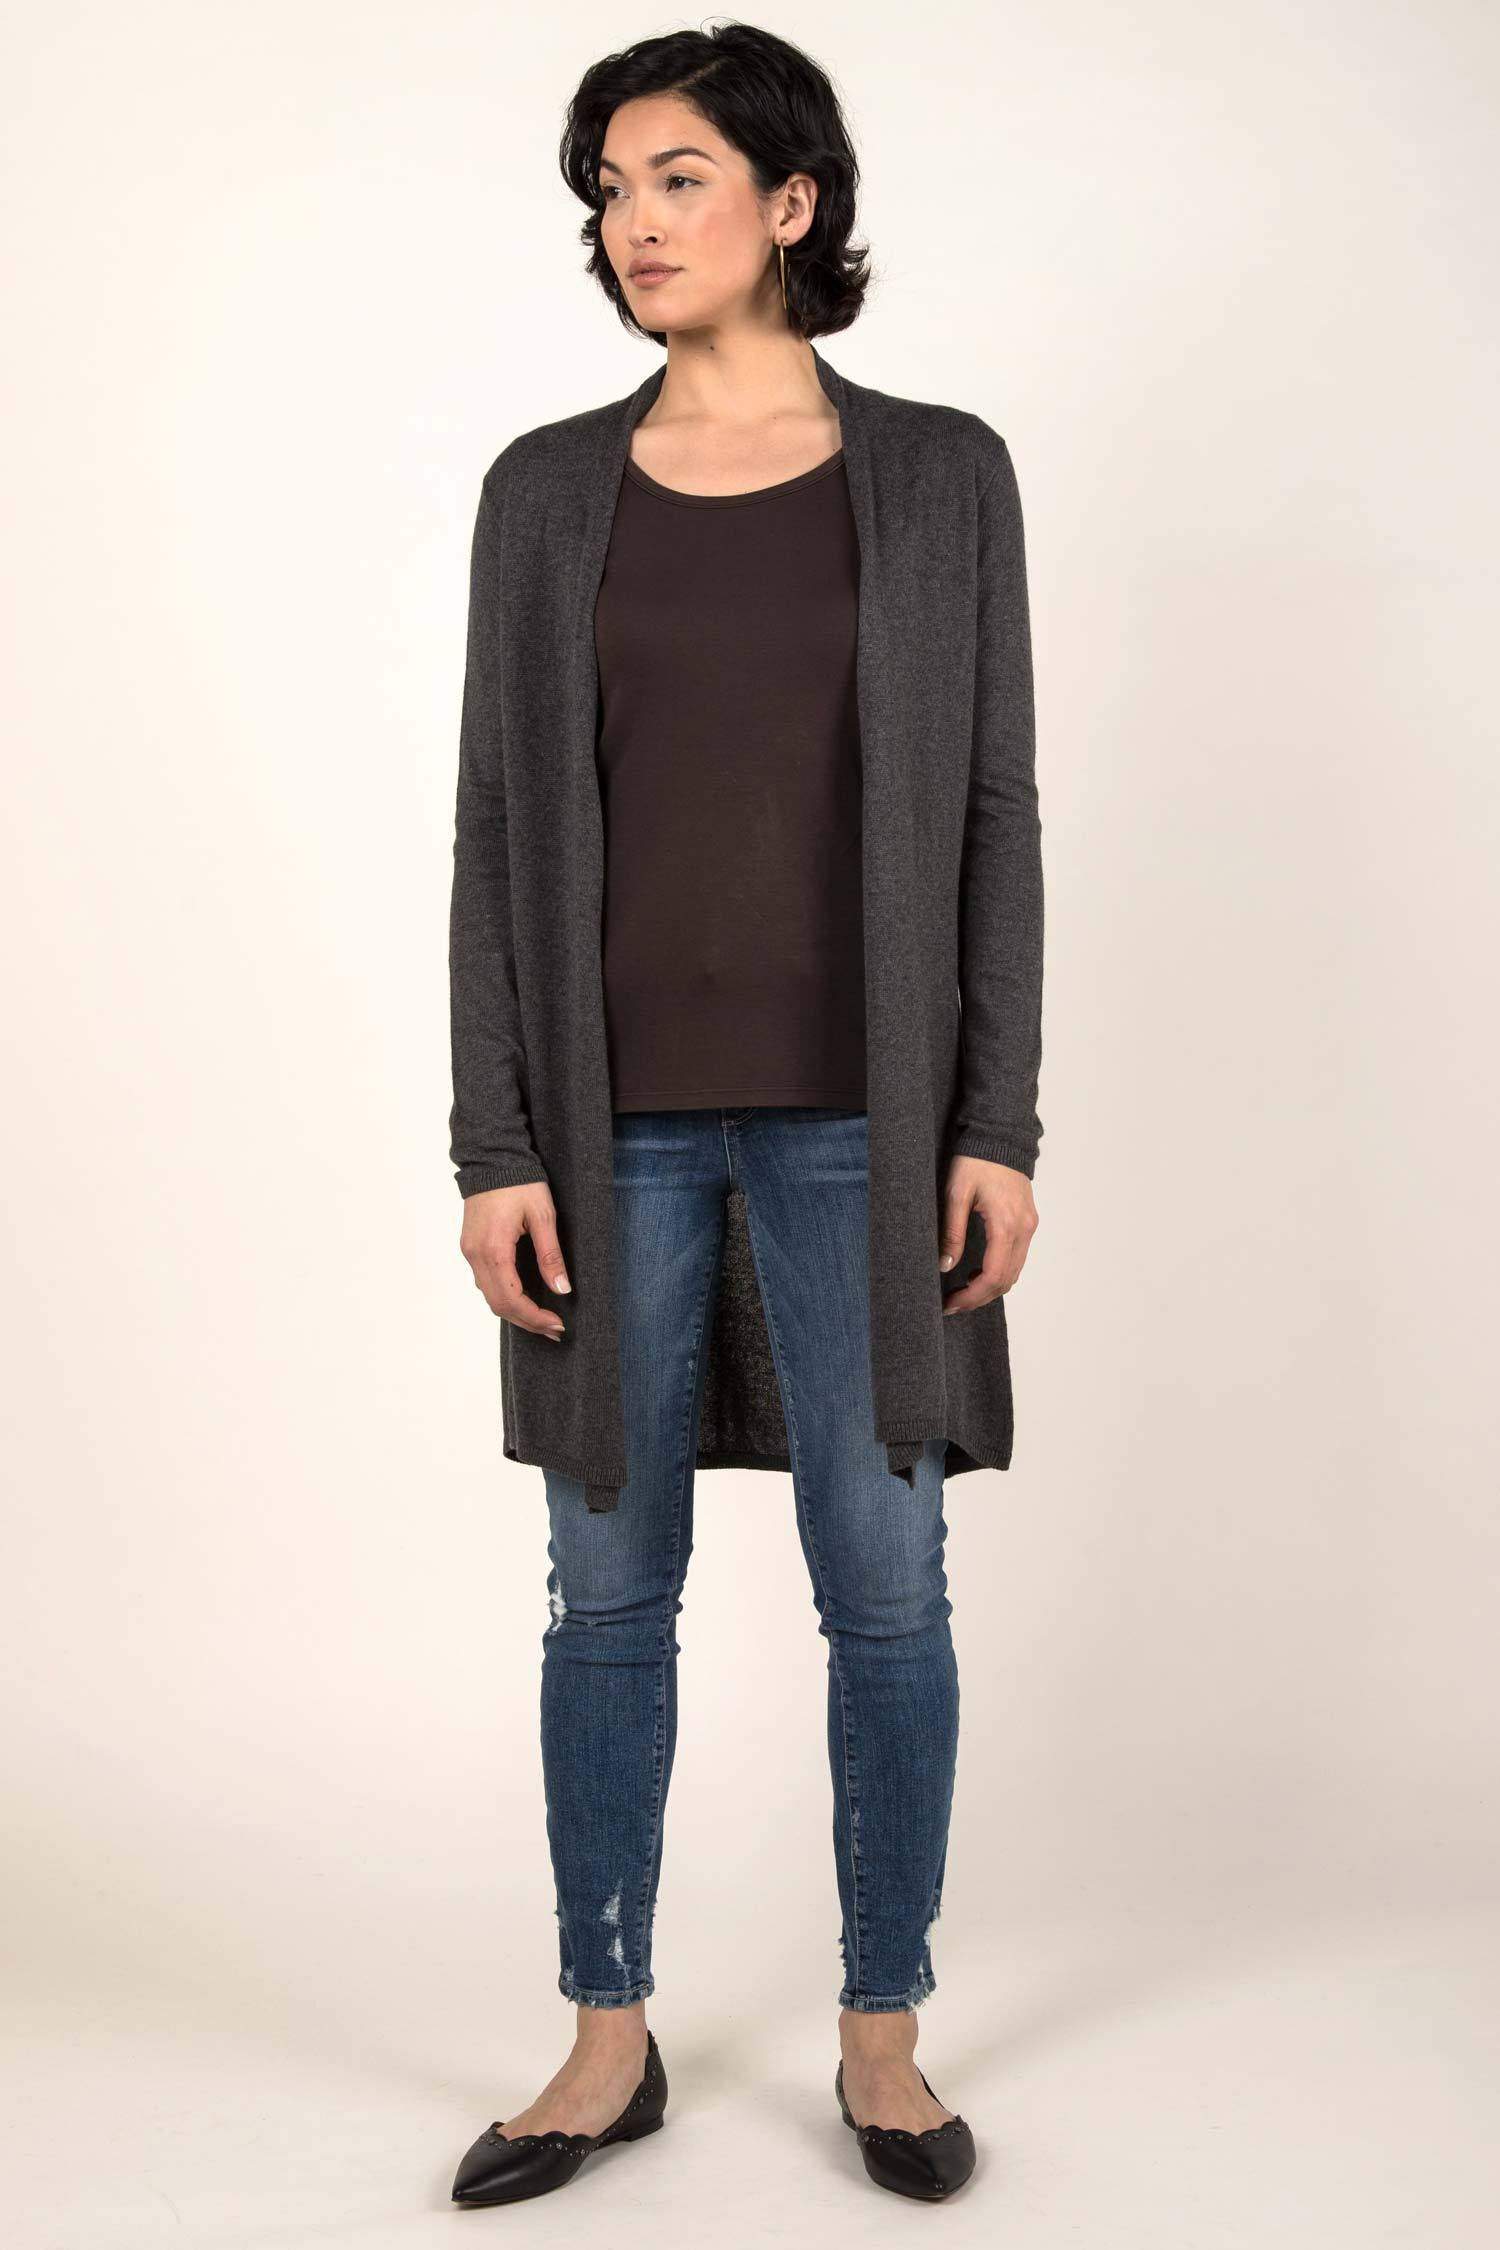 Womens Organic Cotton Sweater | Essential Knit Cardigan | Charcoal